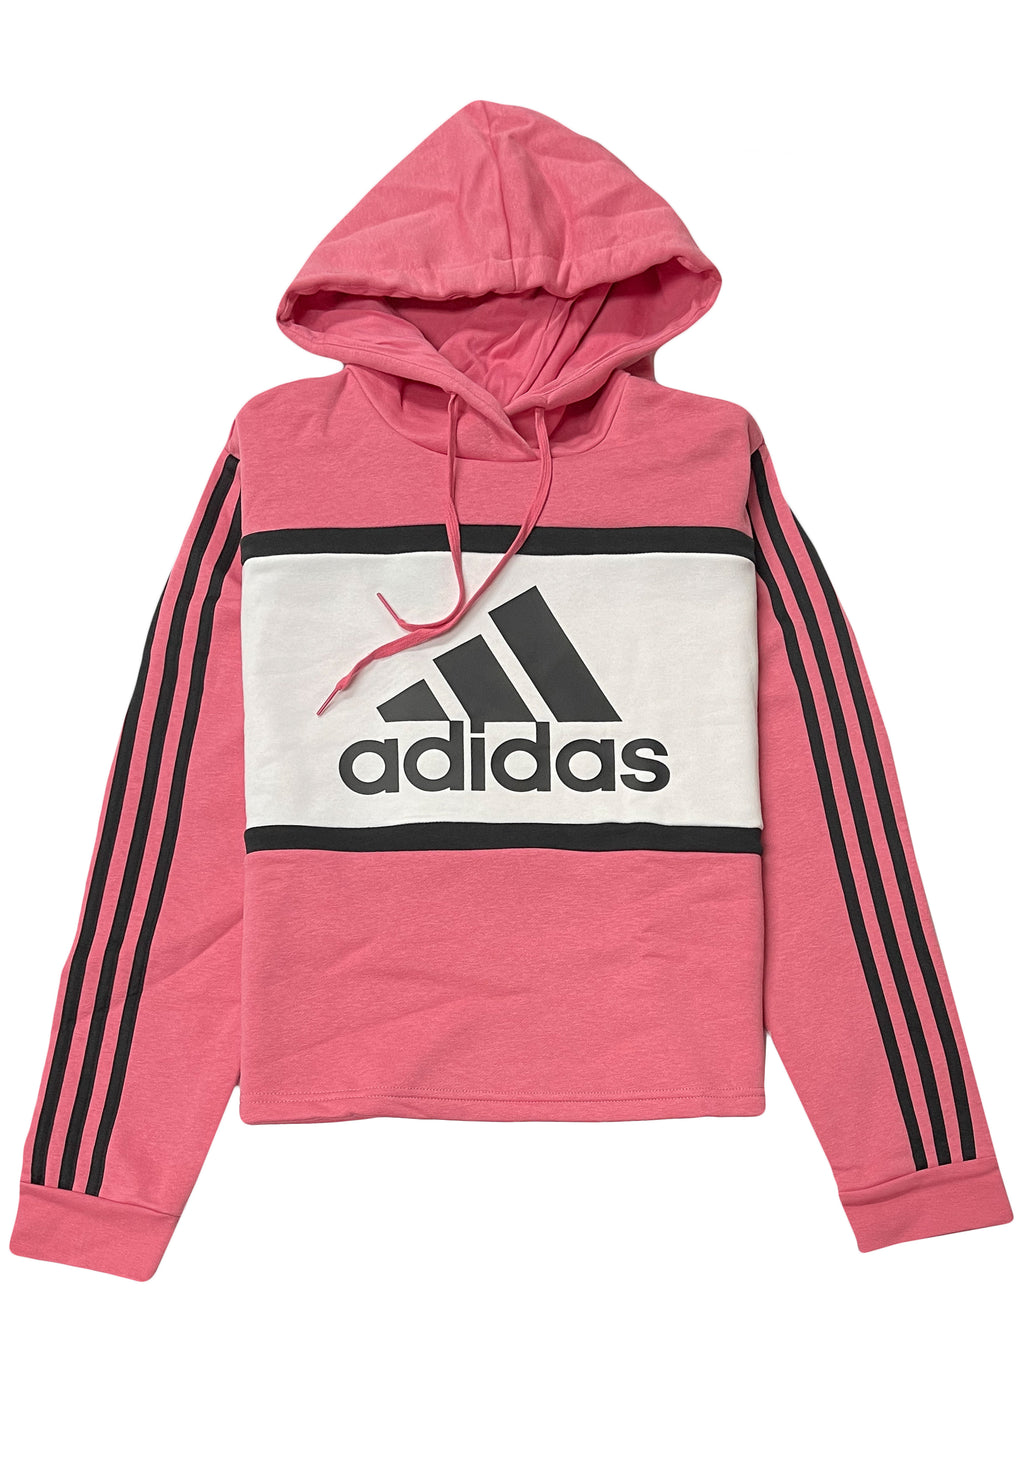 ADIDAS WOMENS ESSENTIALS LOGO COLOURBLOCK CROPPED HOODIE BLACK/PINK <br> GM7127